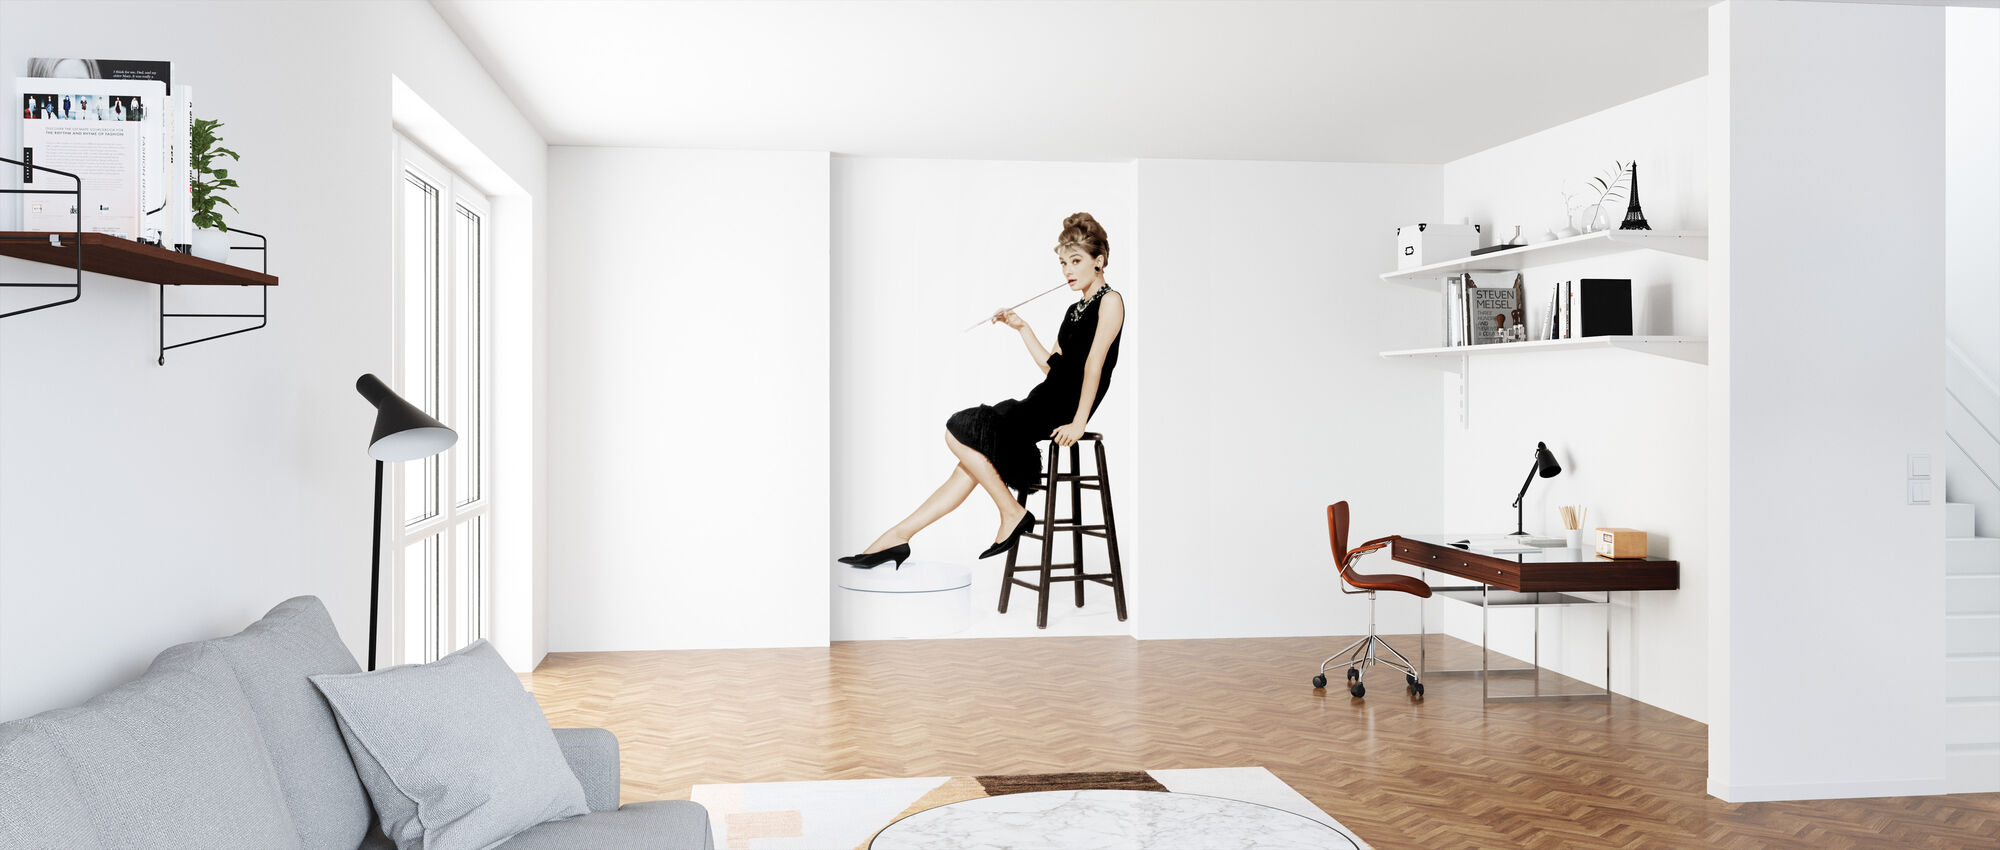 Holly Golightly - Wallpaper - Office